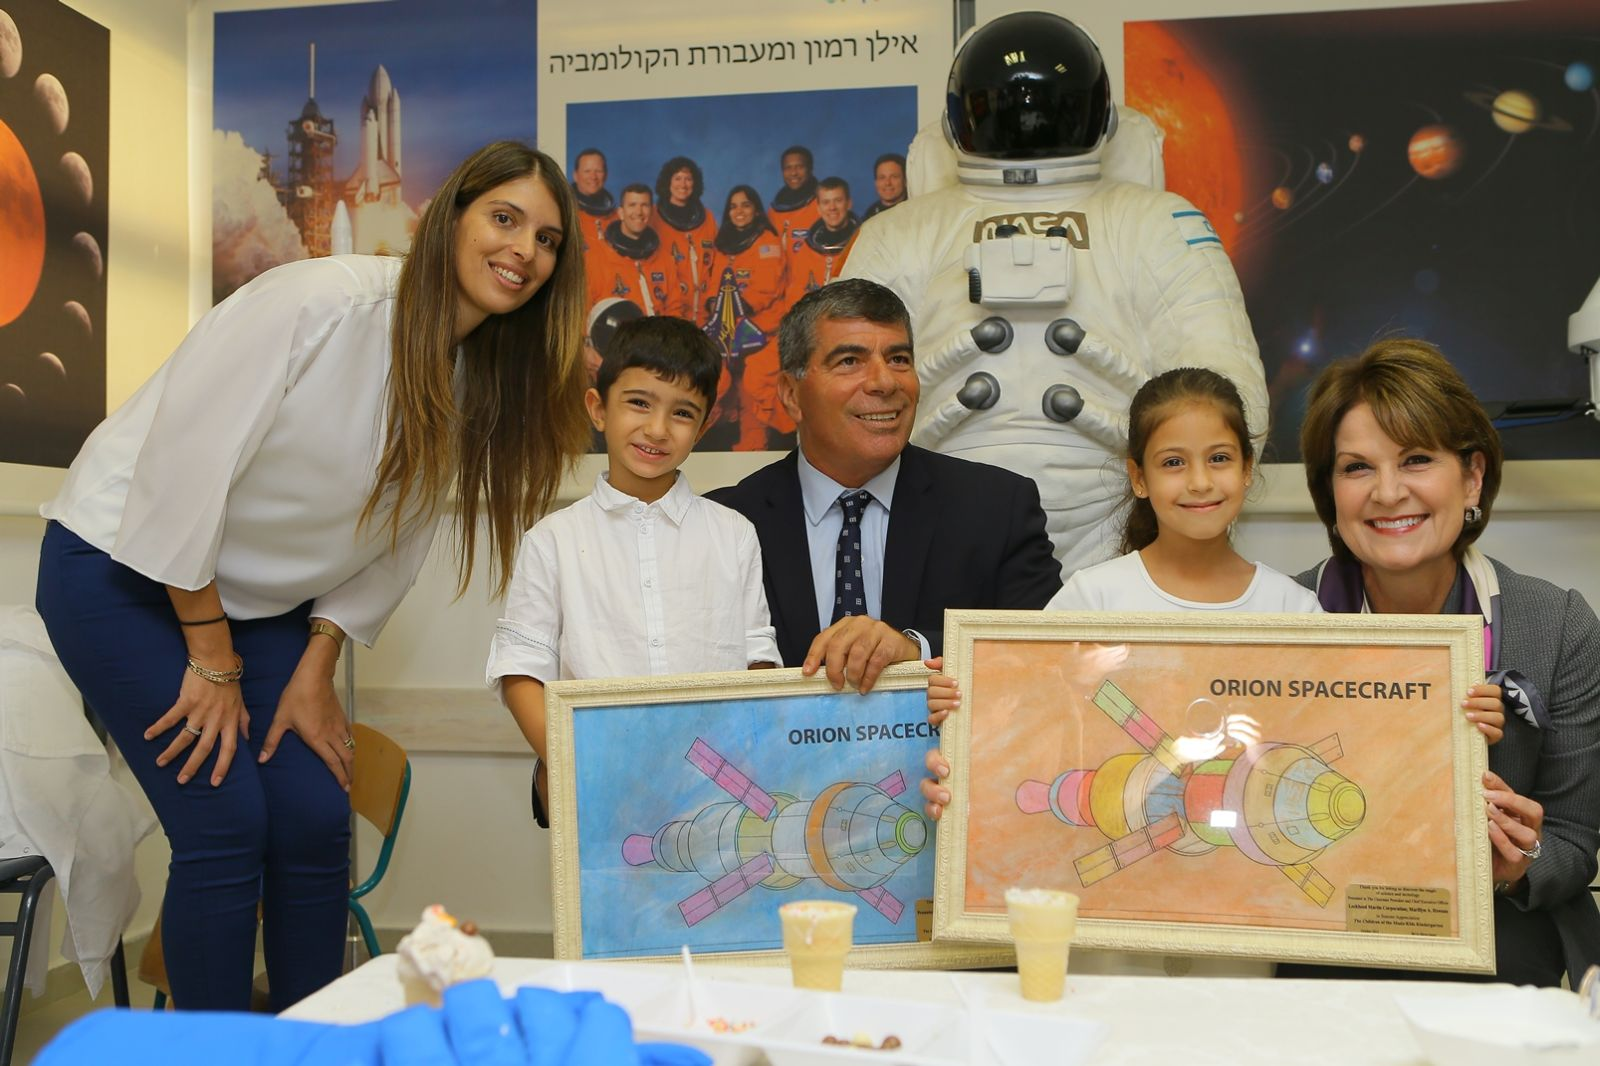 Early-childhood teacher Inbal Azulay, left, and Lockheed Martin Chairman, President and CEO Marillyn Hewson, right, at the dedication ceremony with Rashi Foundation Lt. Gen (ret.) Gabi Ashkenazi and two of the children. Photo by Moshe Azulay